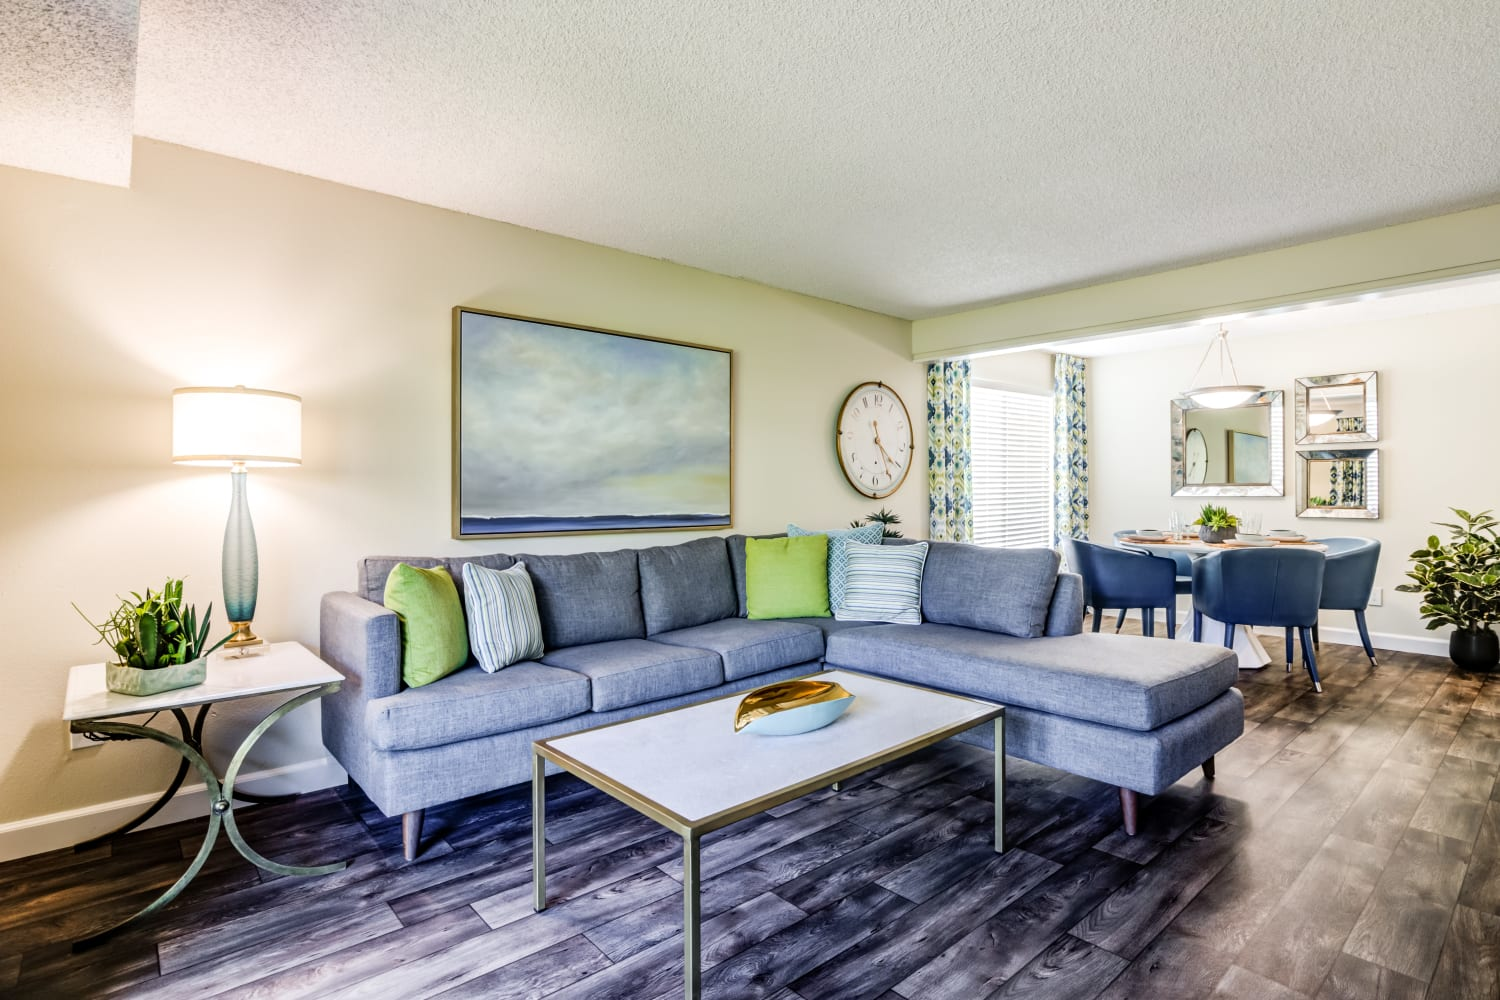 Well decorated living room at Edgewood Park Apartments in Bellevue, Washington